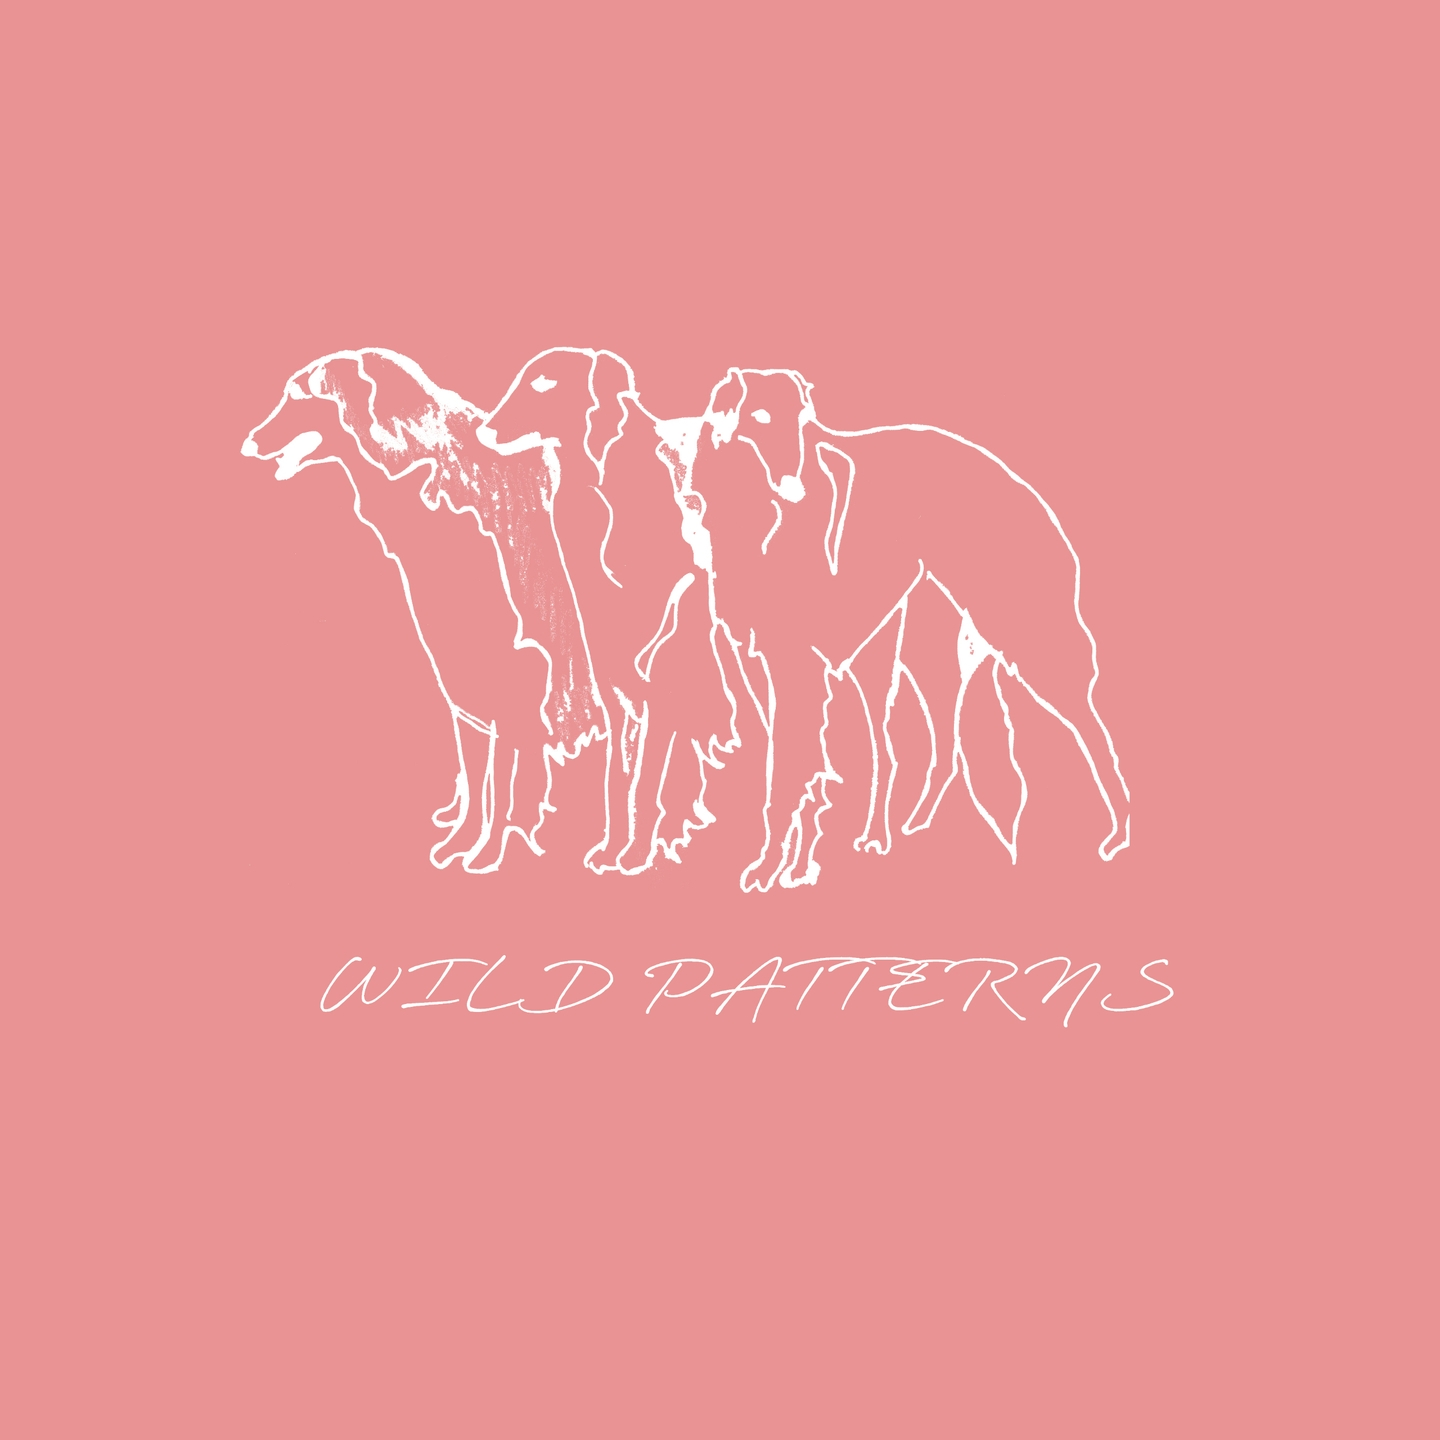 Wild Patterns (@wildpatterns) Cover Image